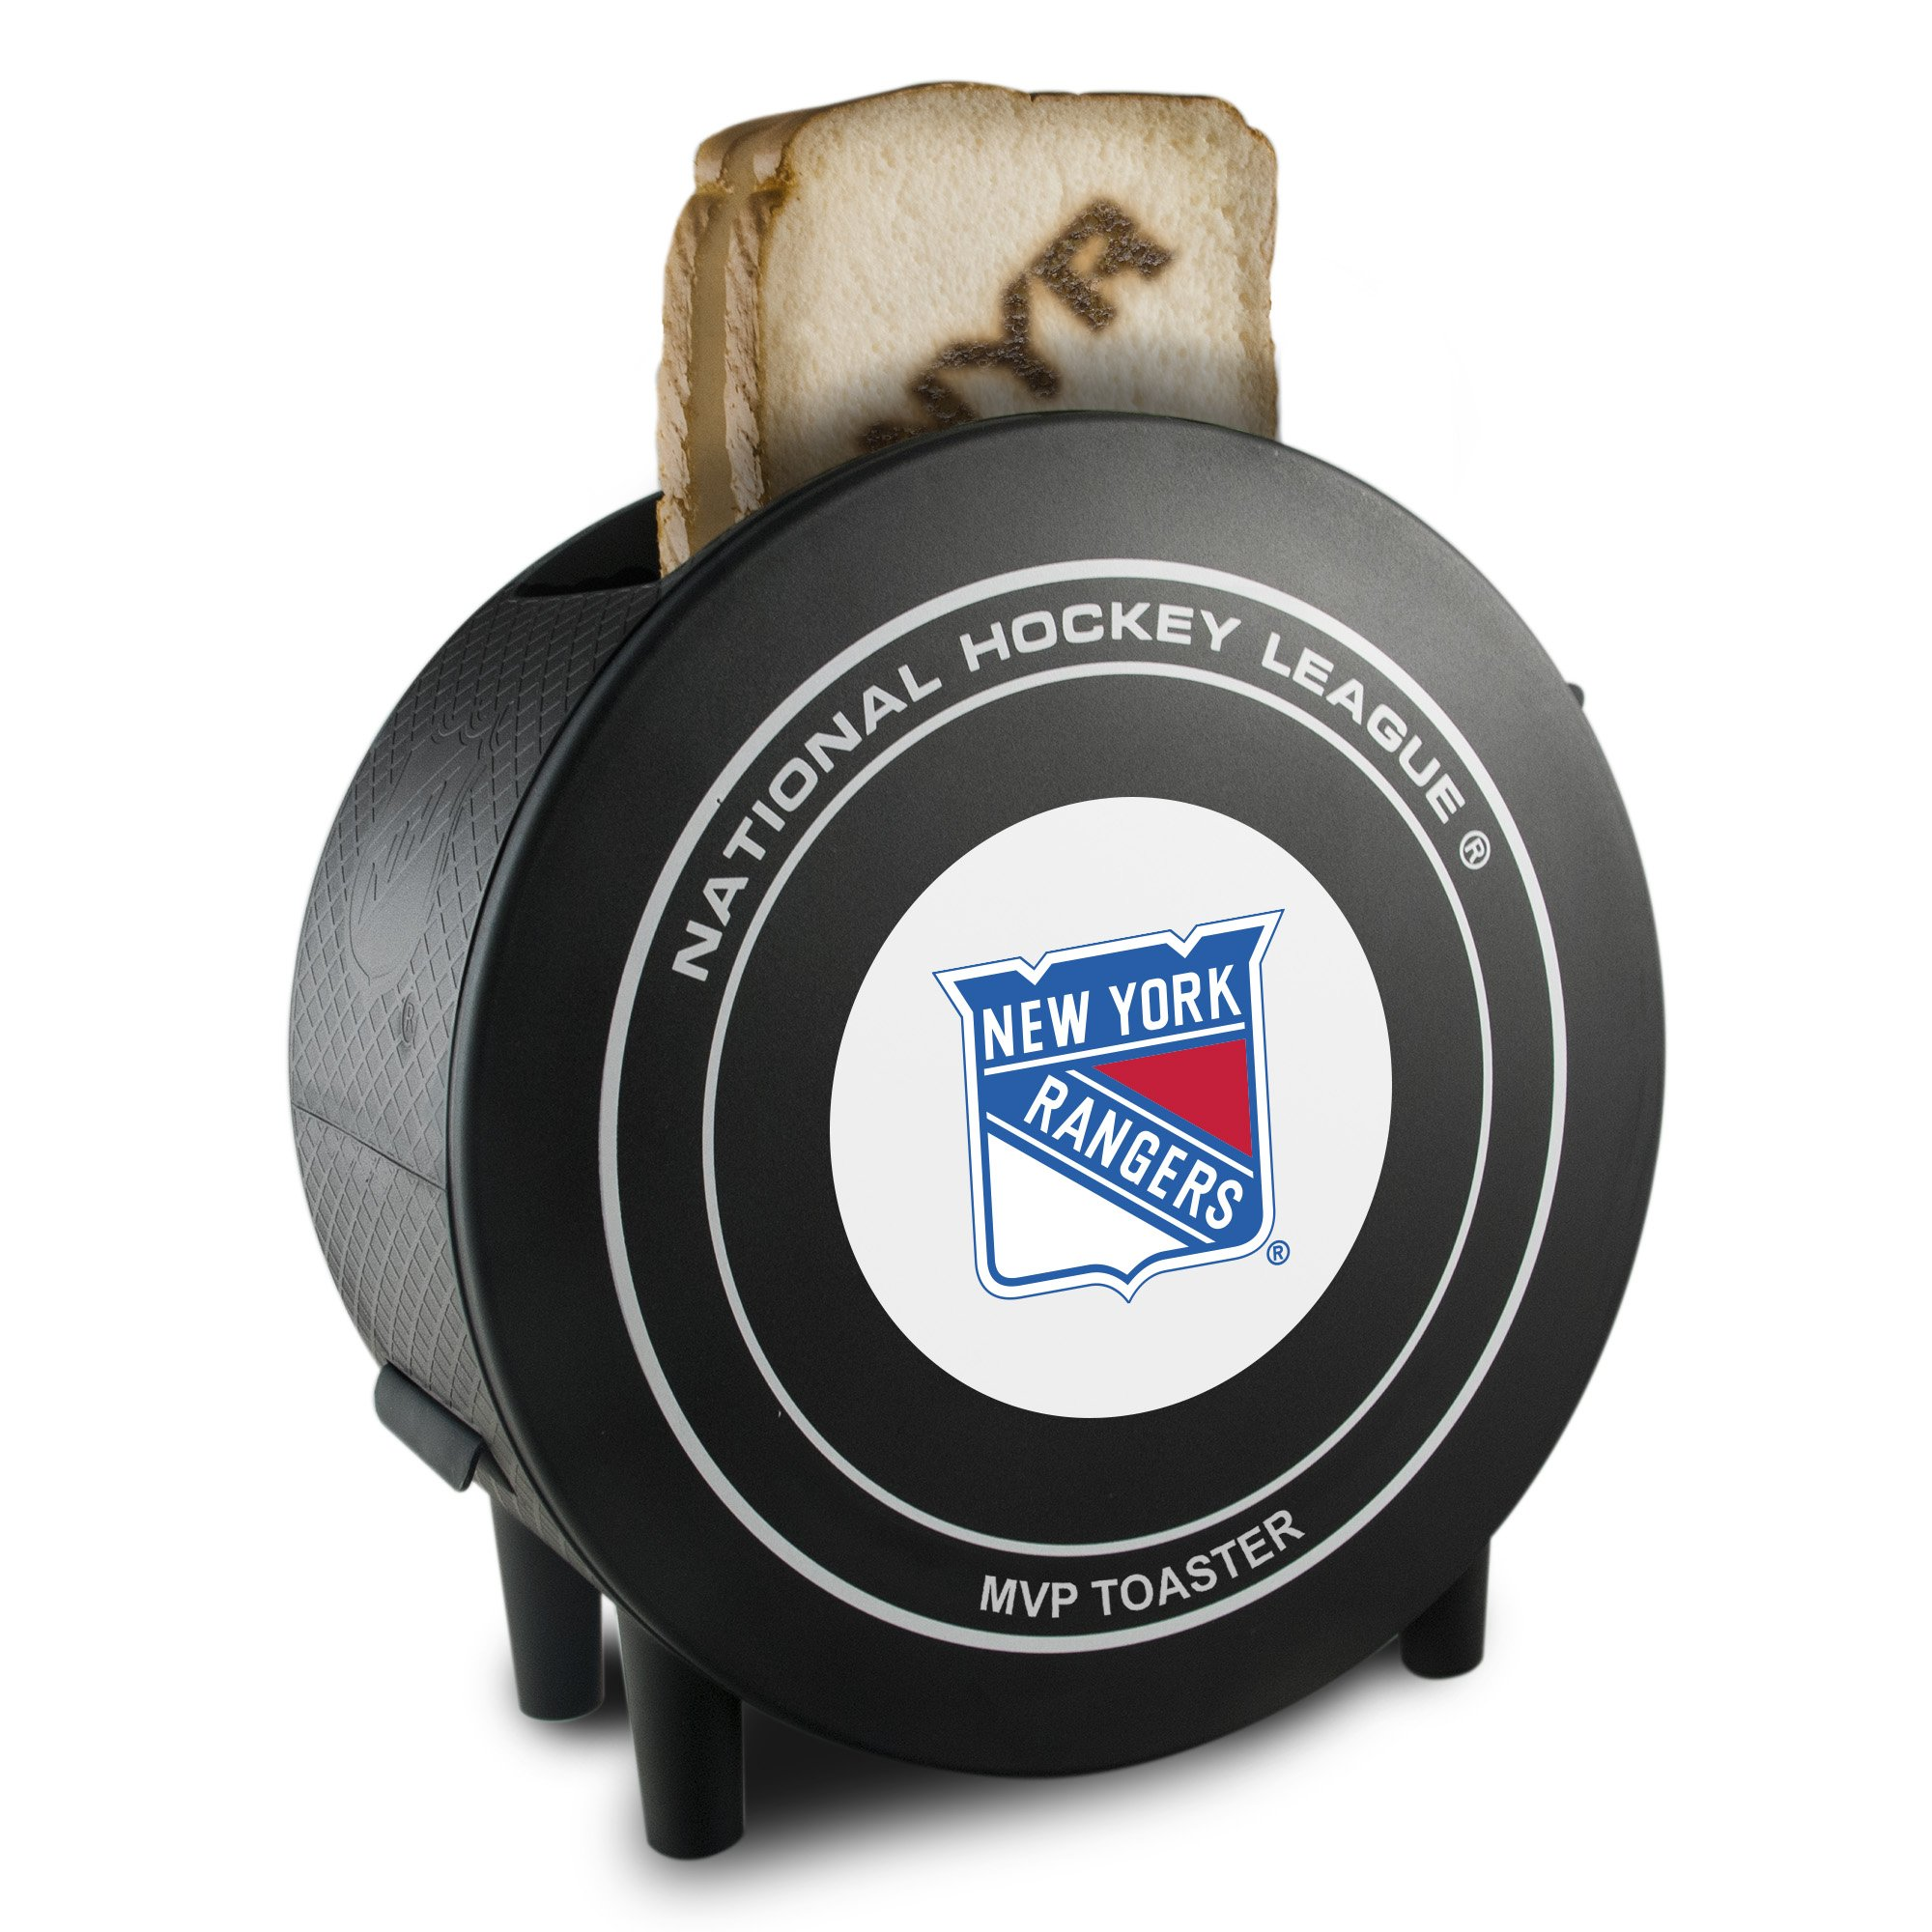 NHL New York Rangers ProToast MVP Toaster, 10 x 5 x 9.75-Inch, Black by Pangea Brands